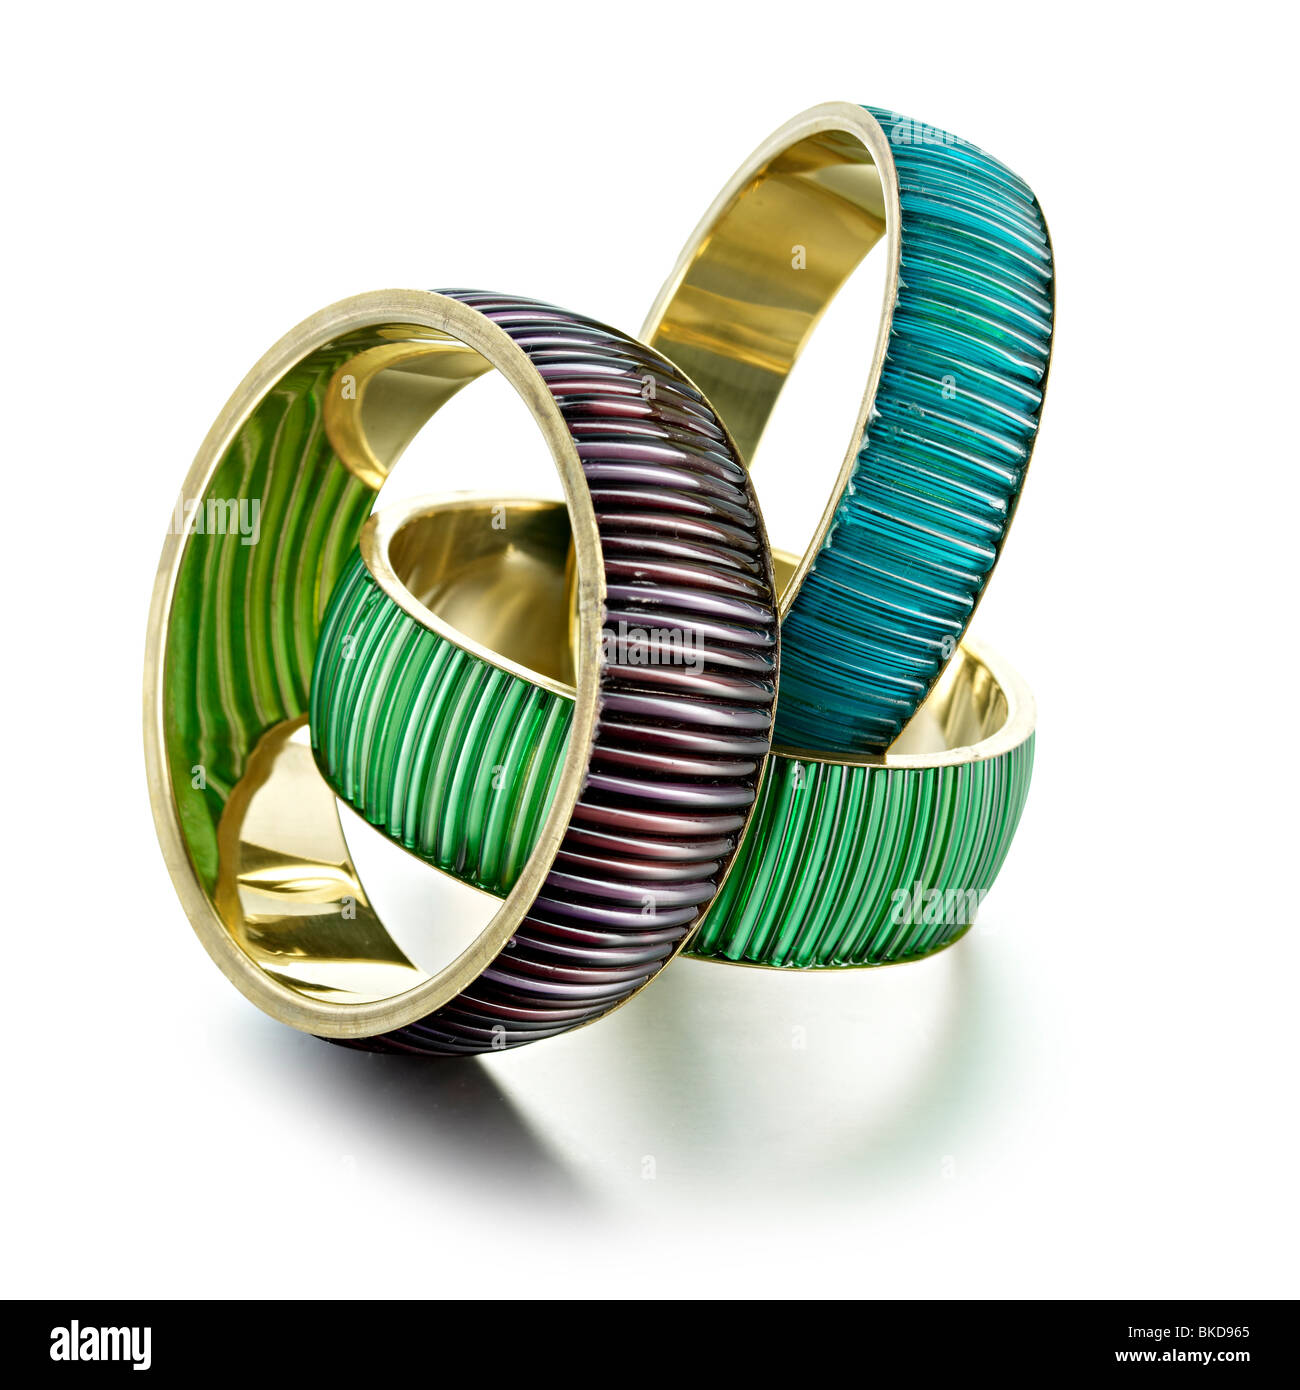 3 colored bangles - Stock Image